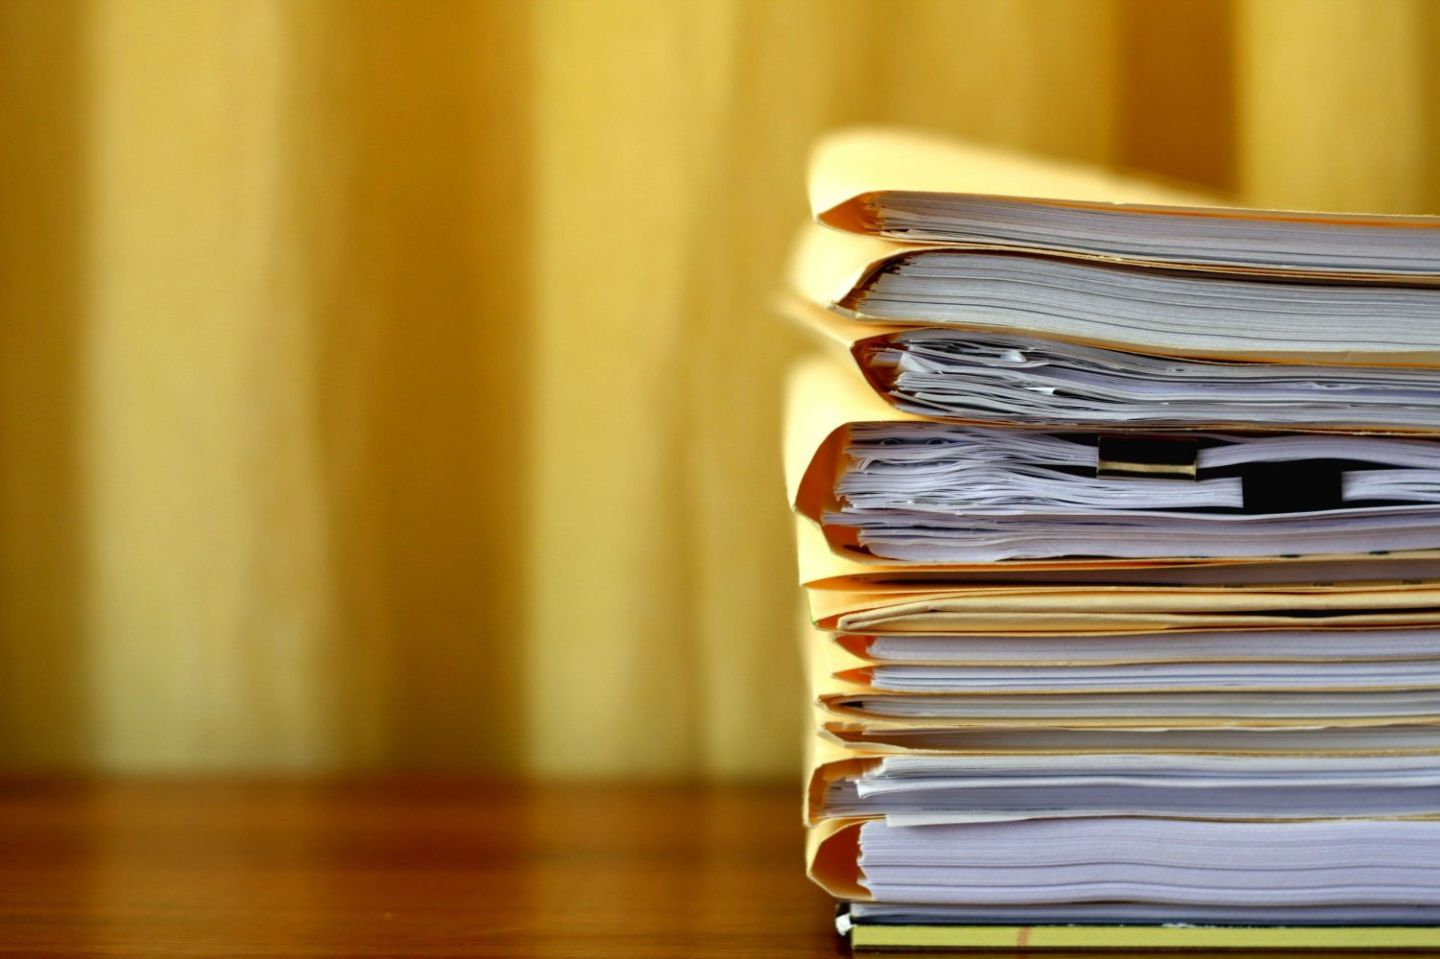 stack of folders containing papers